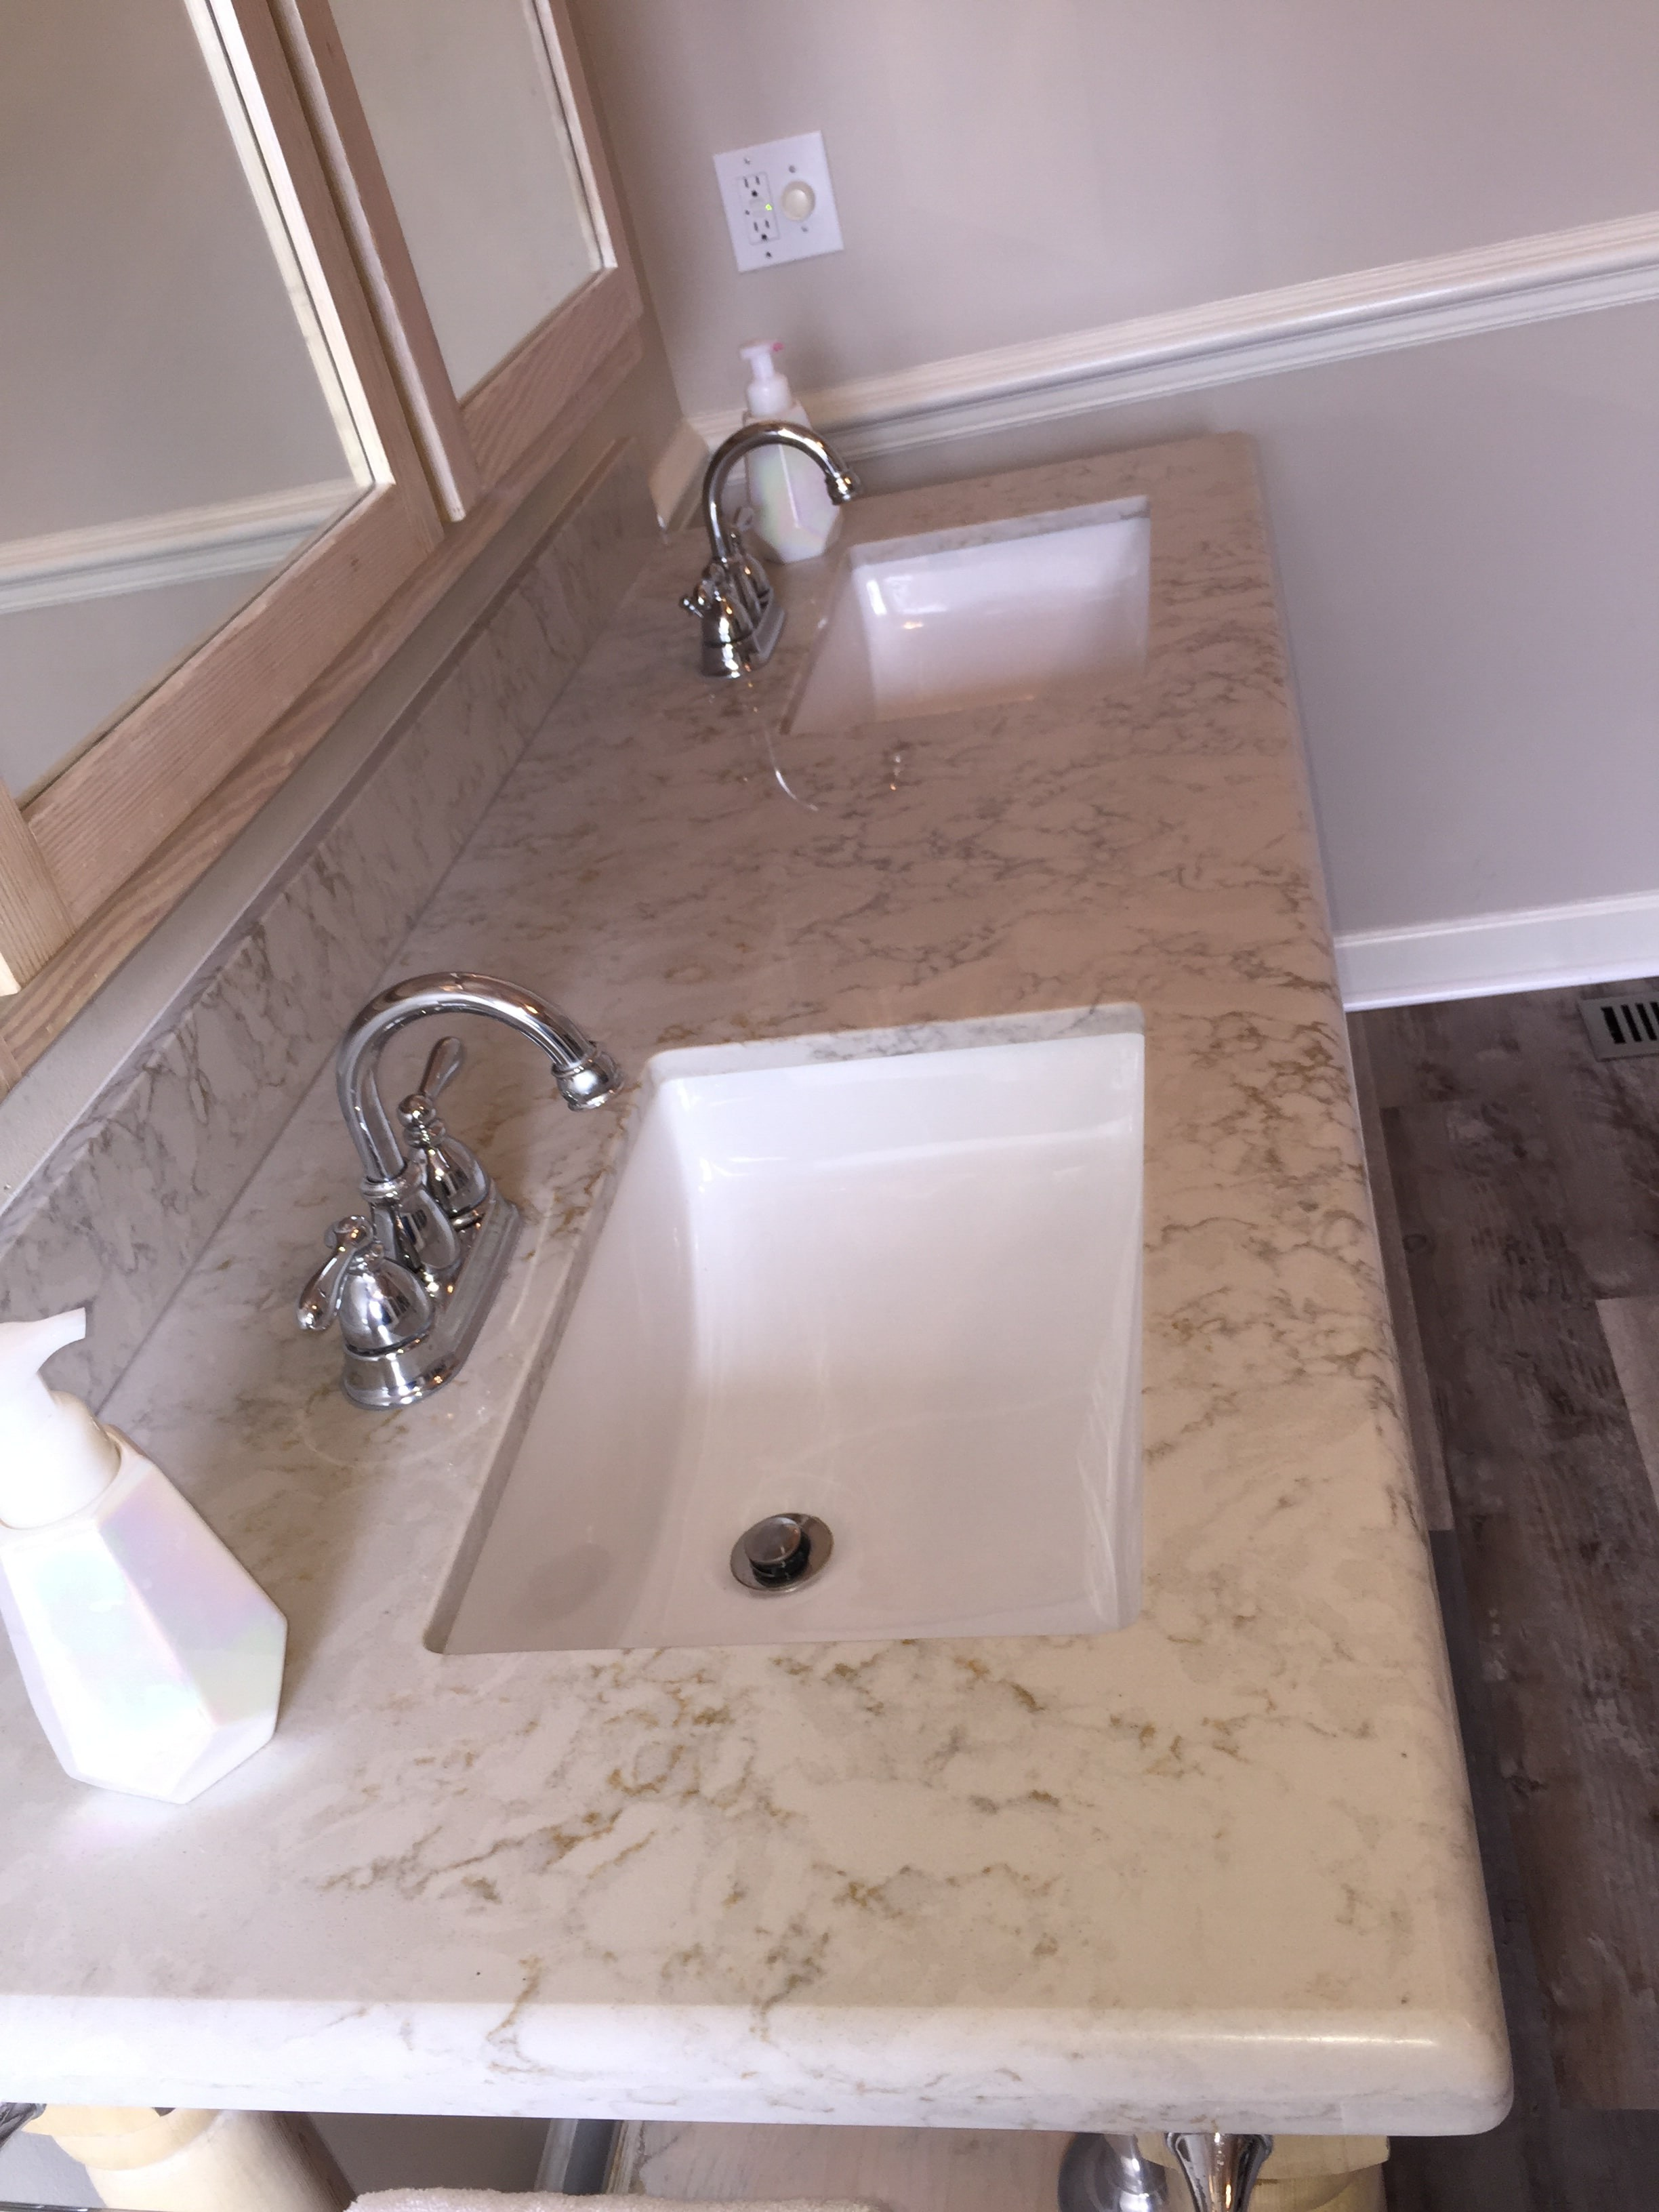 Bathroom sink in Wilson NC from Richie Ballance Flooring